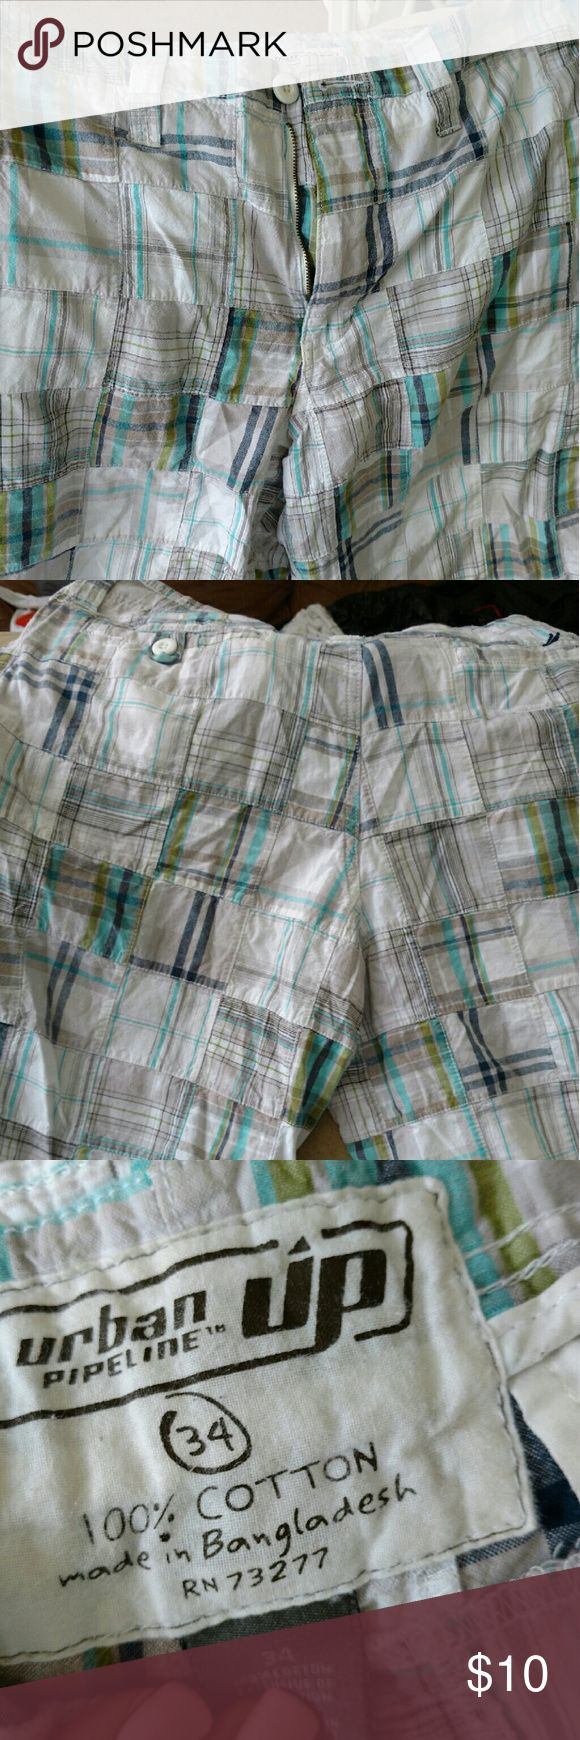 Mens shorts Mens shorts plaid real nice blue green blocking lots of life left for school urban pipeline  Shorts Hybrids